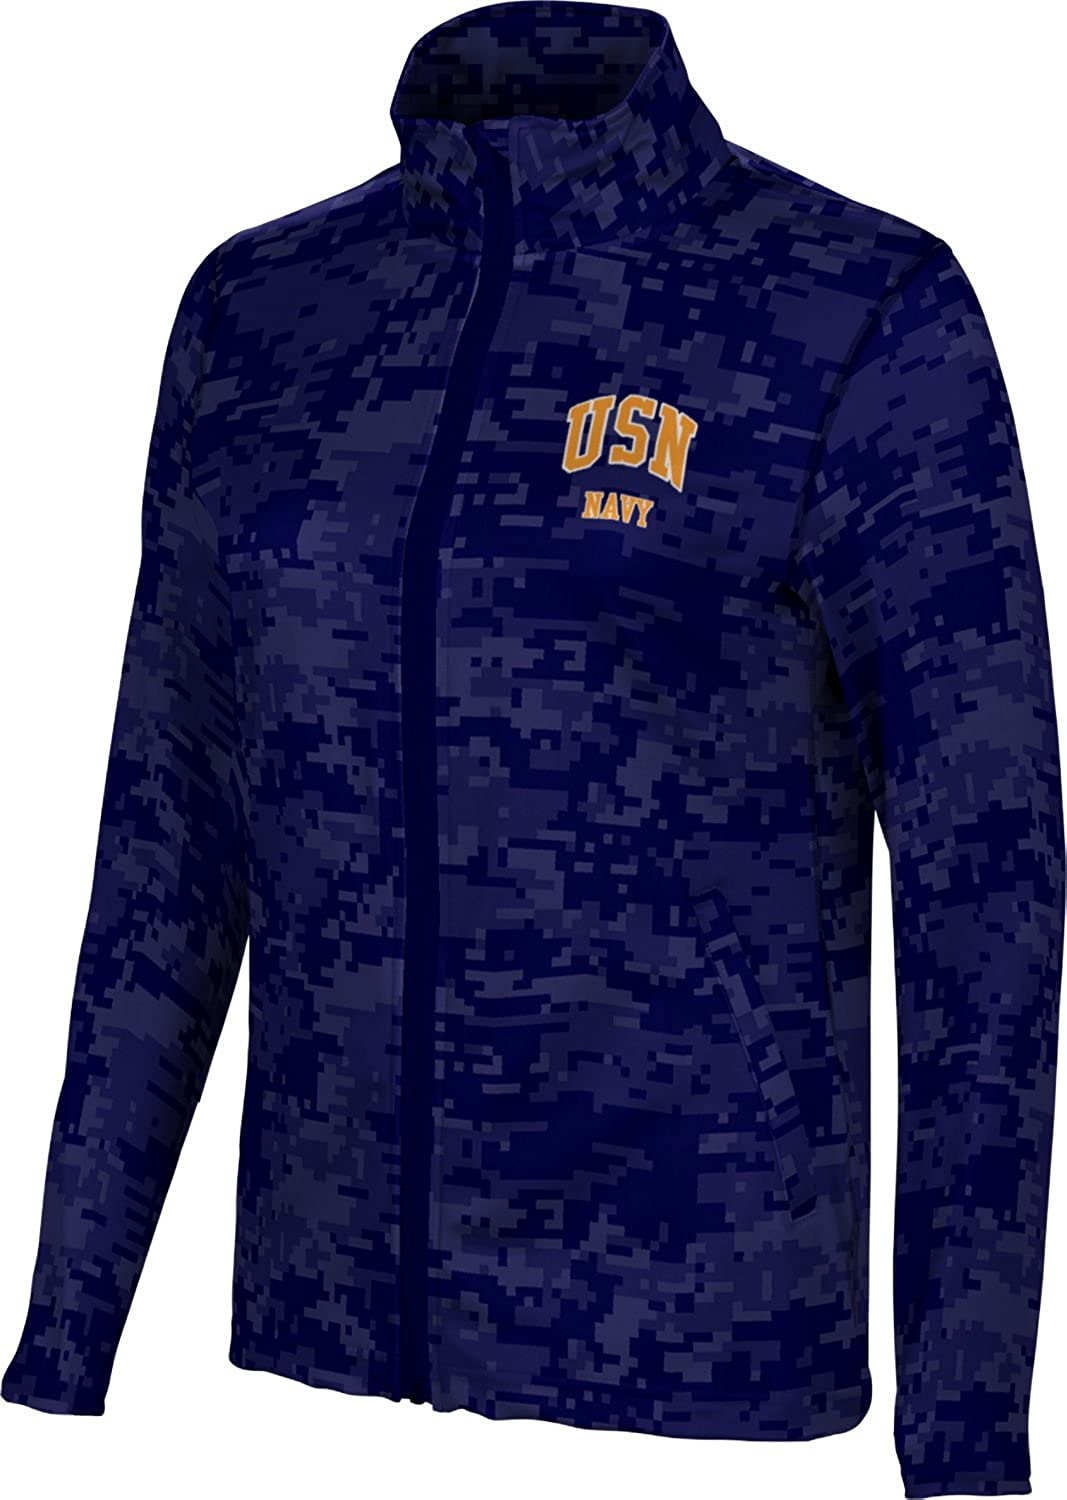 Women's THE ONLY EASY DAY WAS YESTERDAY Military Digital Full Zip Jacket